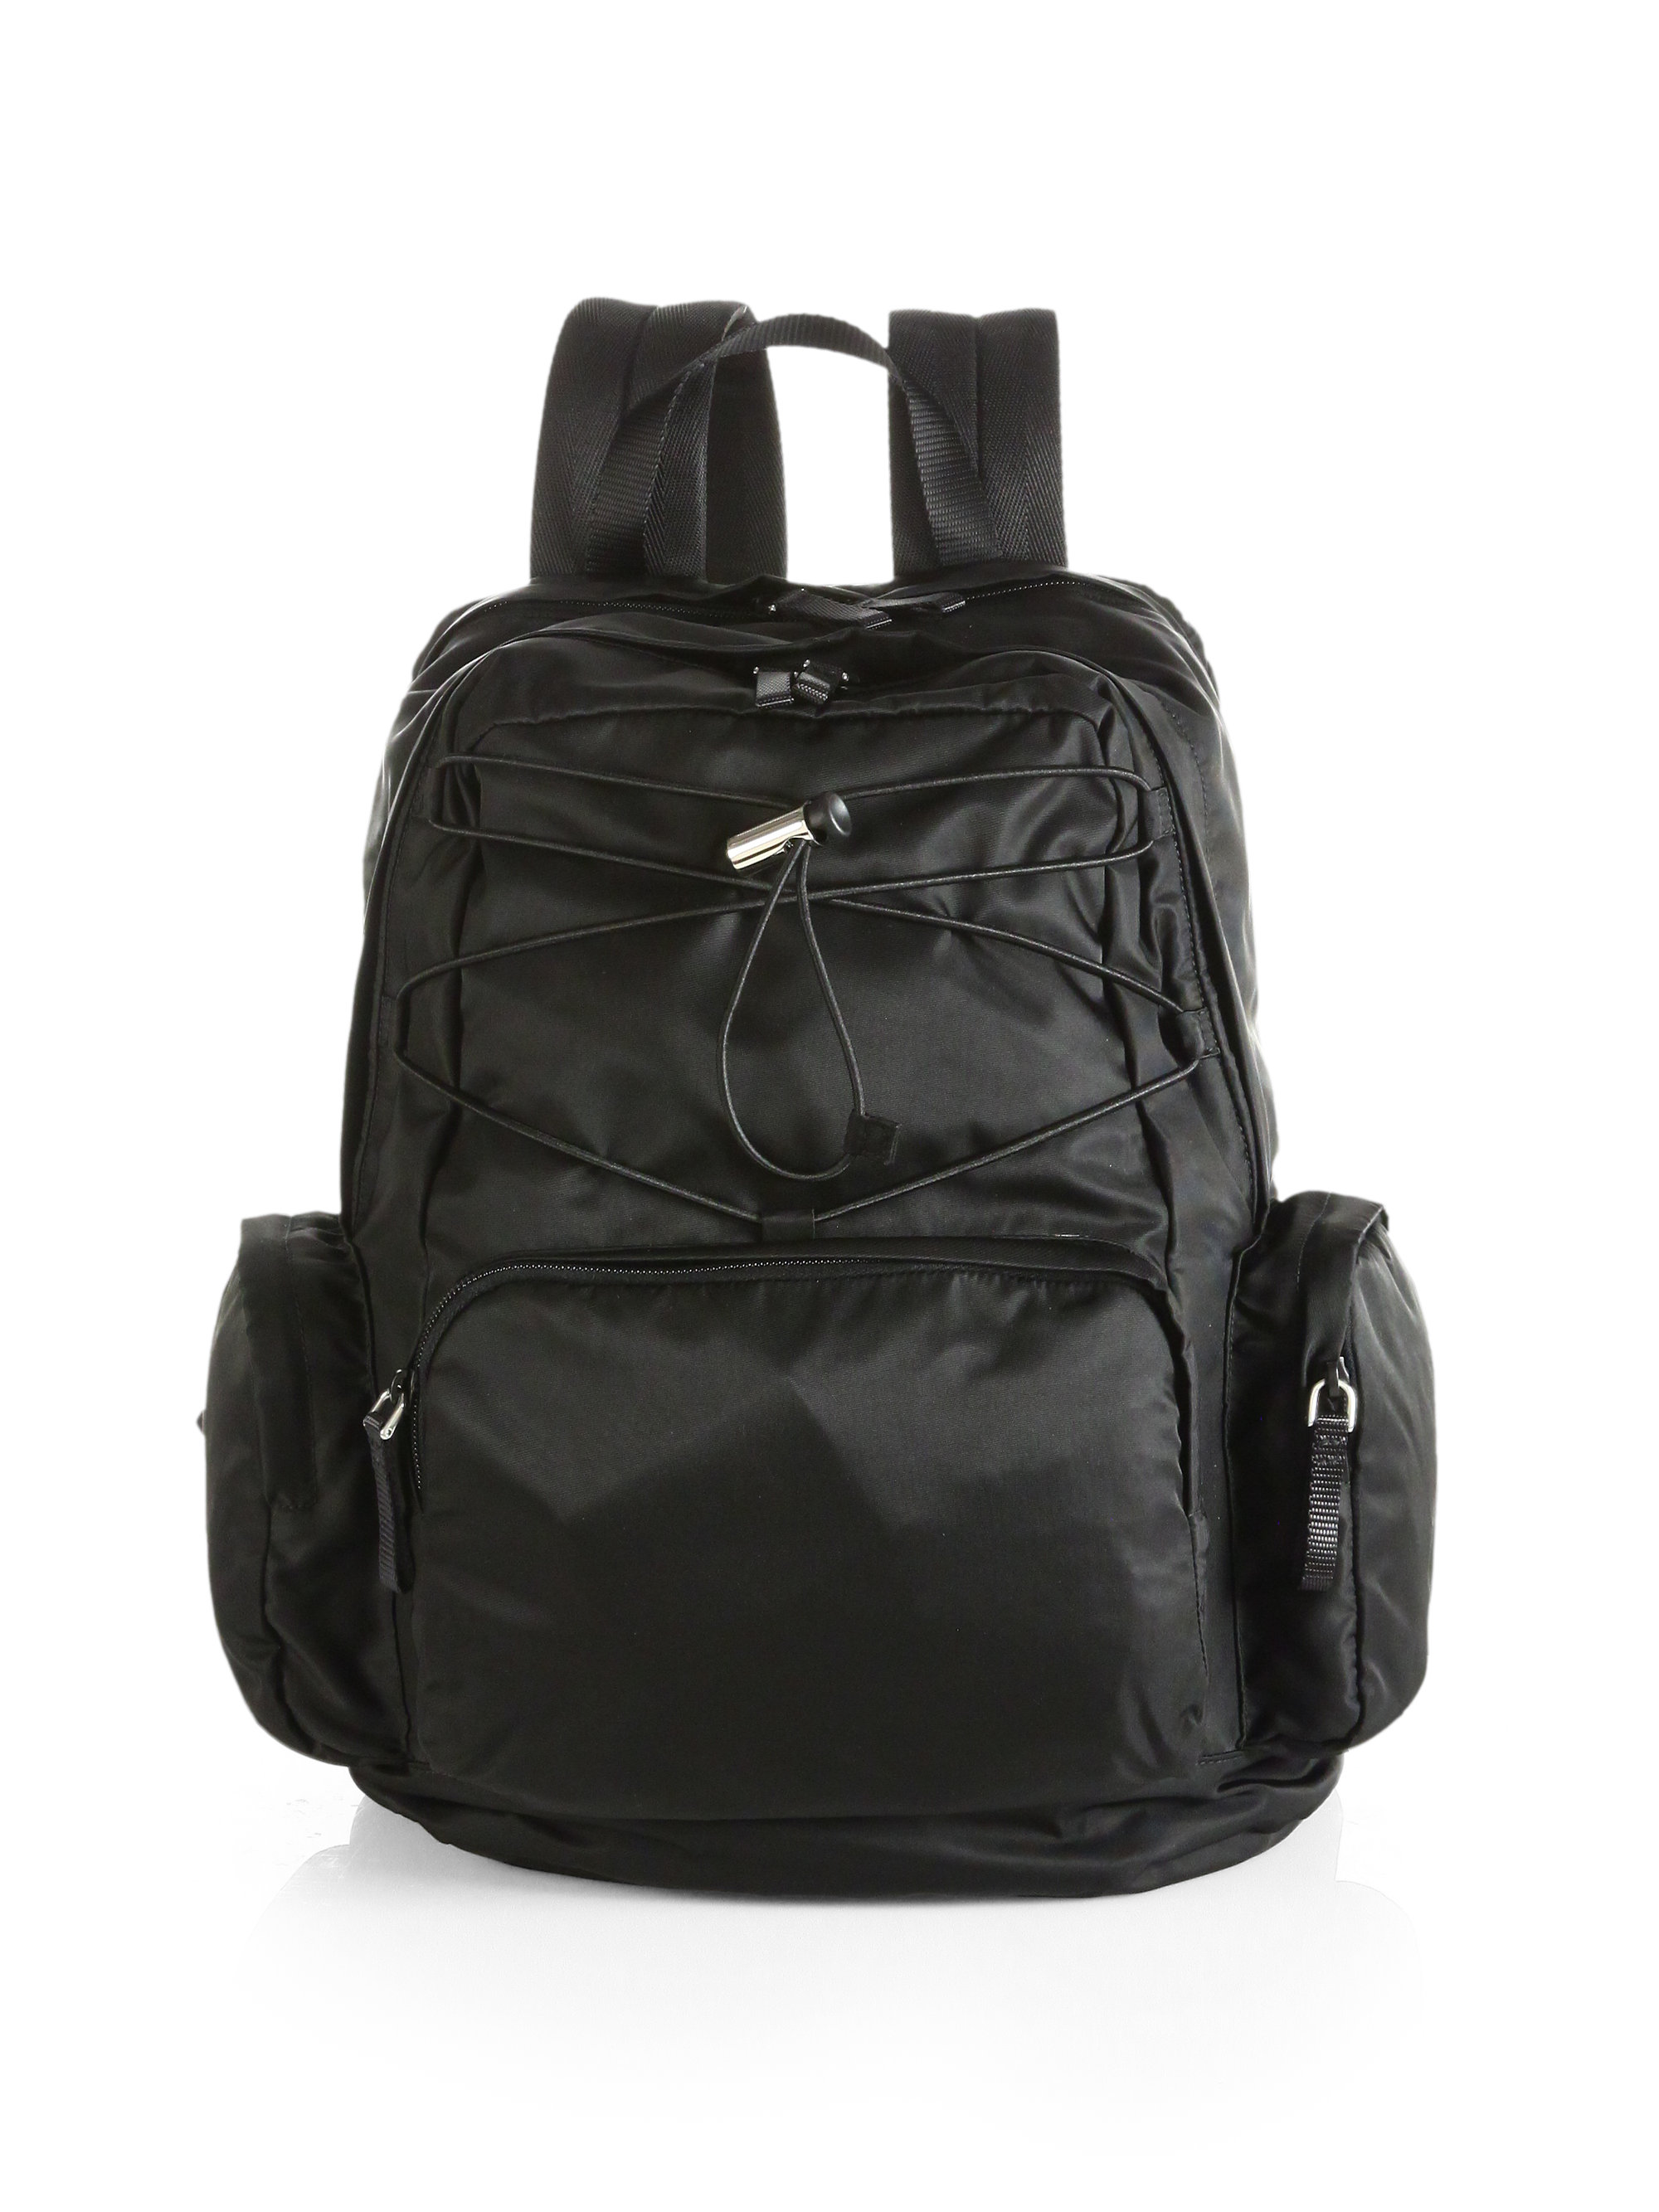 Nylon Backpacks - Luggage For Less Overstockcom